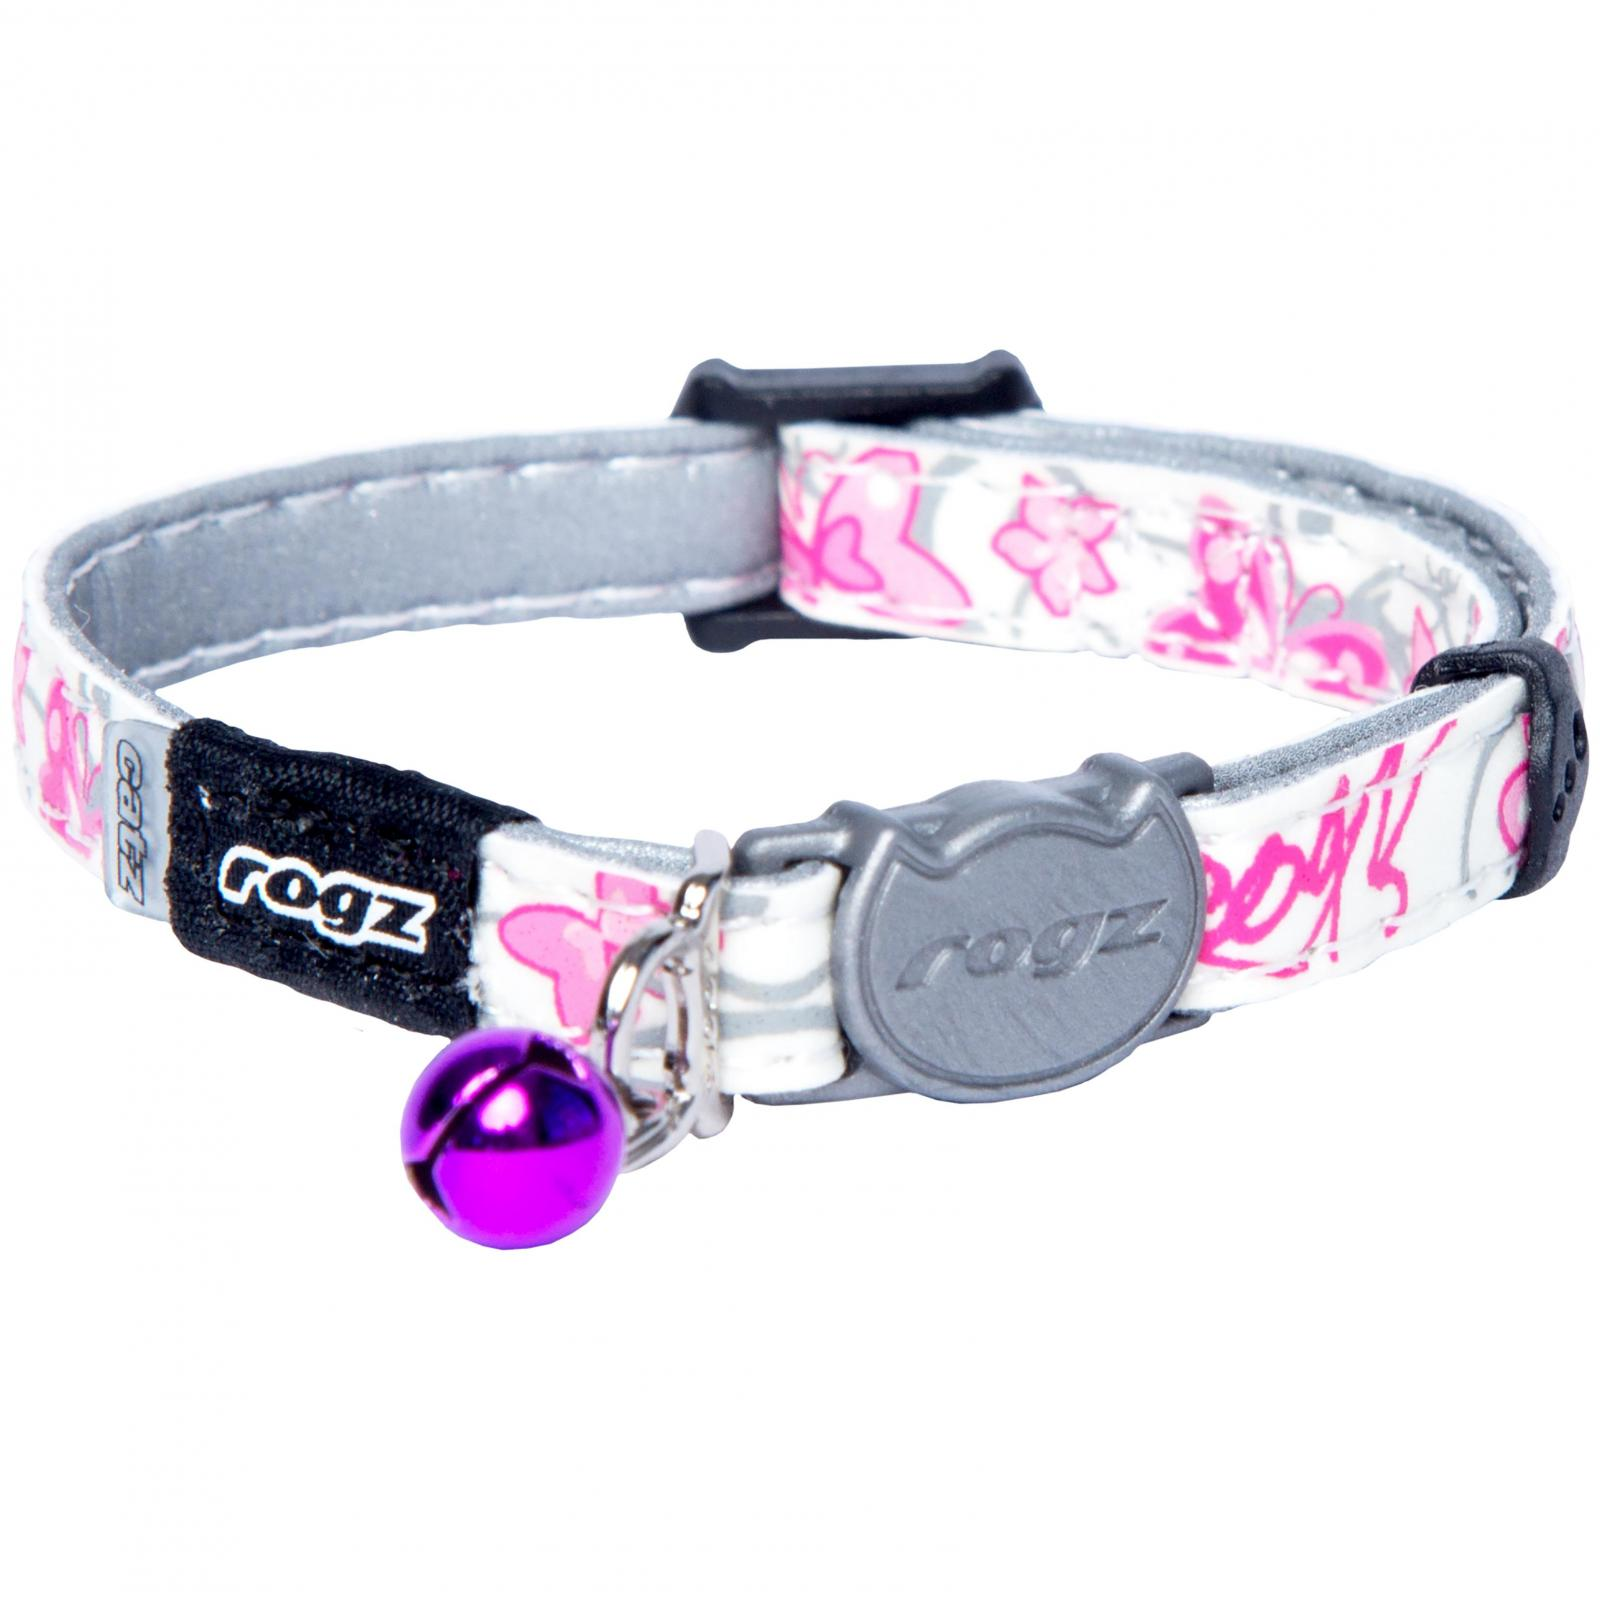 Rogz Rogz Glowcat Safeloc Collar Extra Small